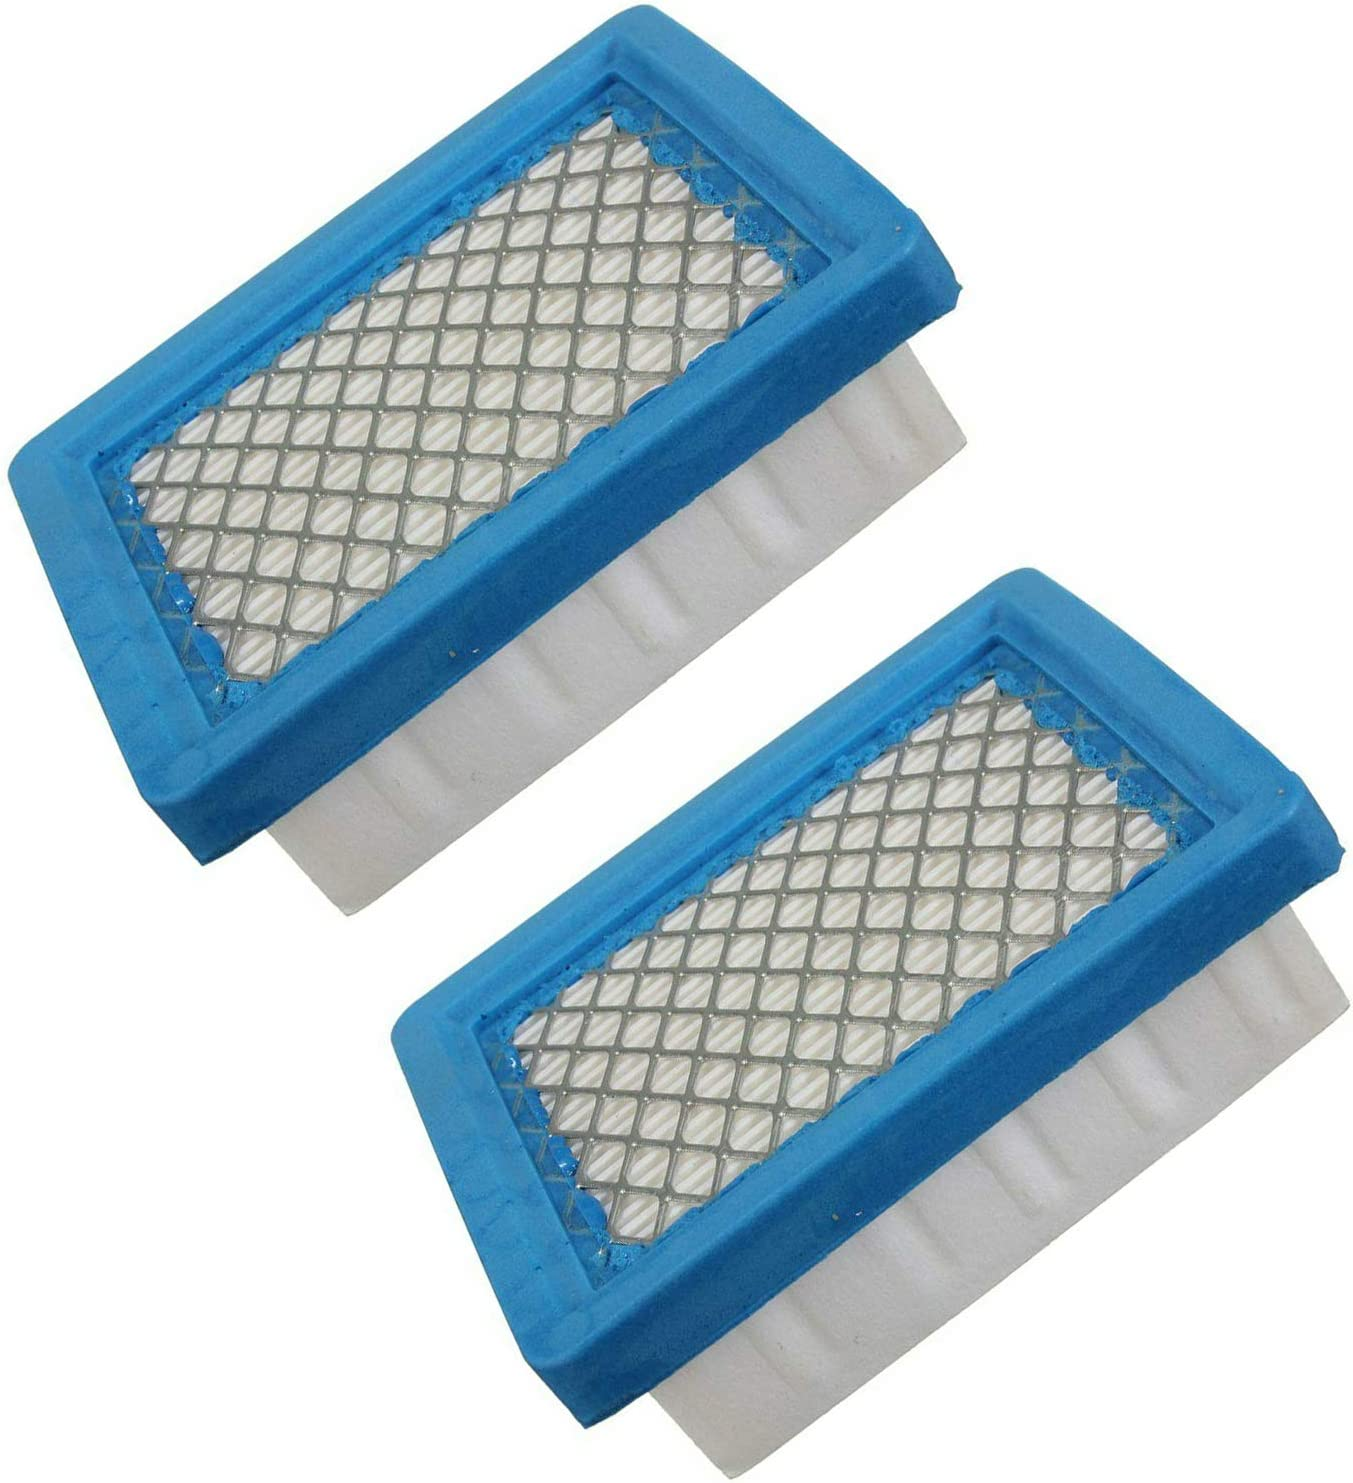 Air Pre Filter for Tecumseh 36046 36634 and Fits 4 5 5.5 6 6.75 Hp Engines